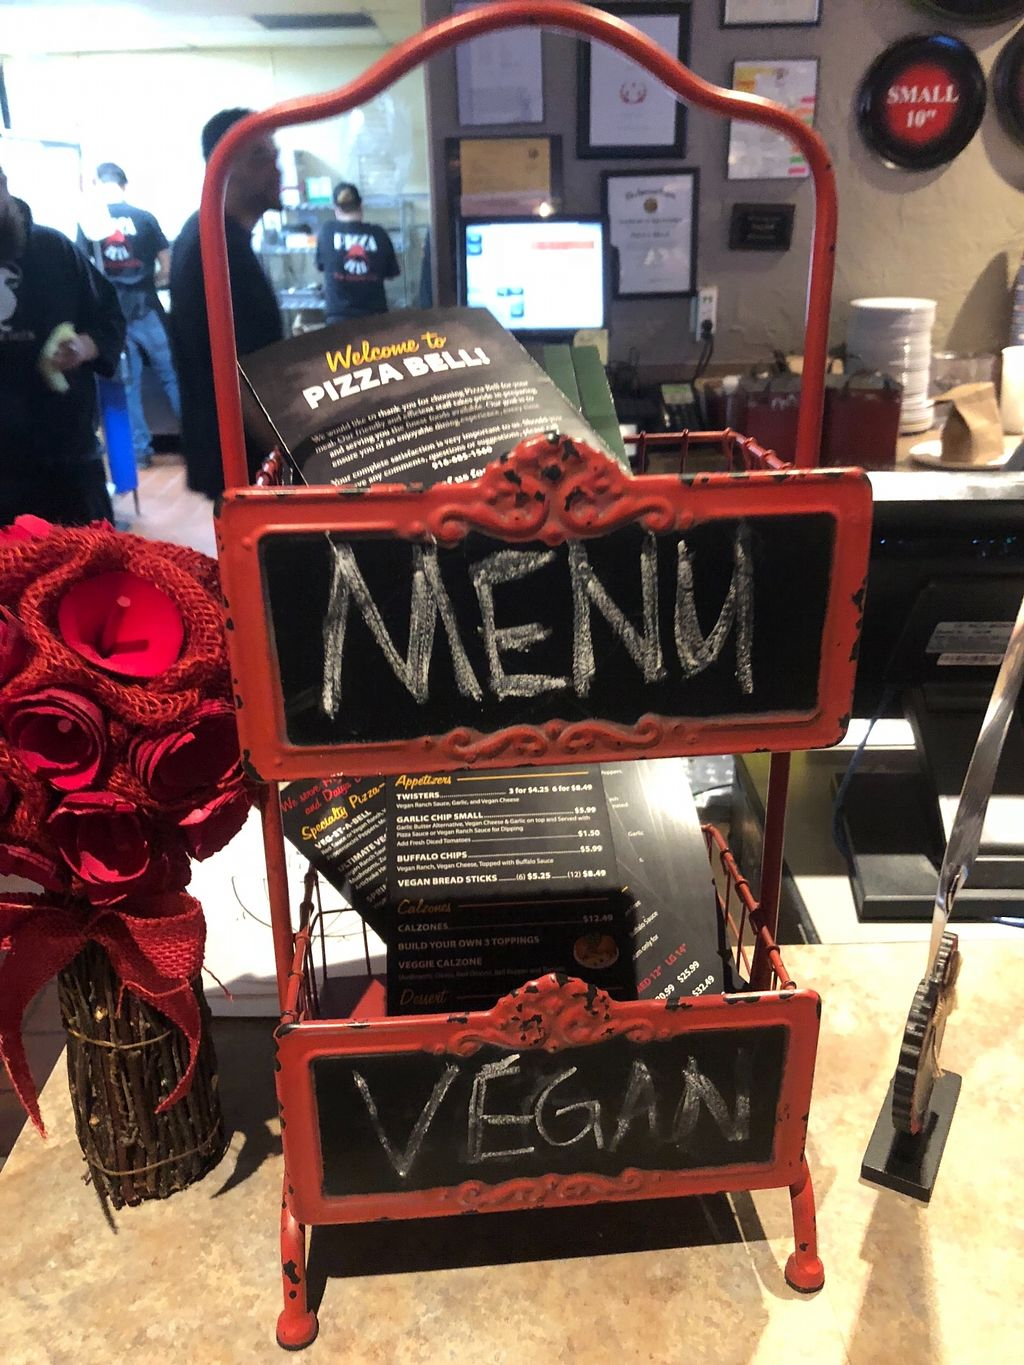 """Photo of Pizza Bell  by <a href=""""/members/profile/ehjay"""">ehjay</a> <br/>The menu stand at the front counter.   <br/> February 4, 2018  - <a href='/contact/abuse/image/72819/354664'>Report</a>"""